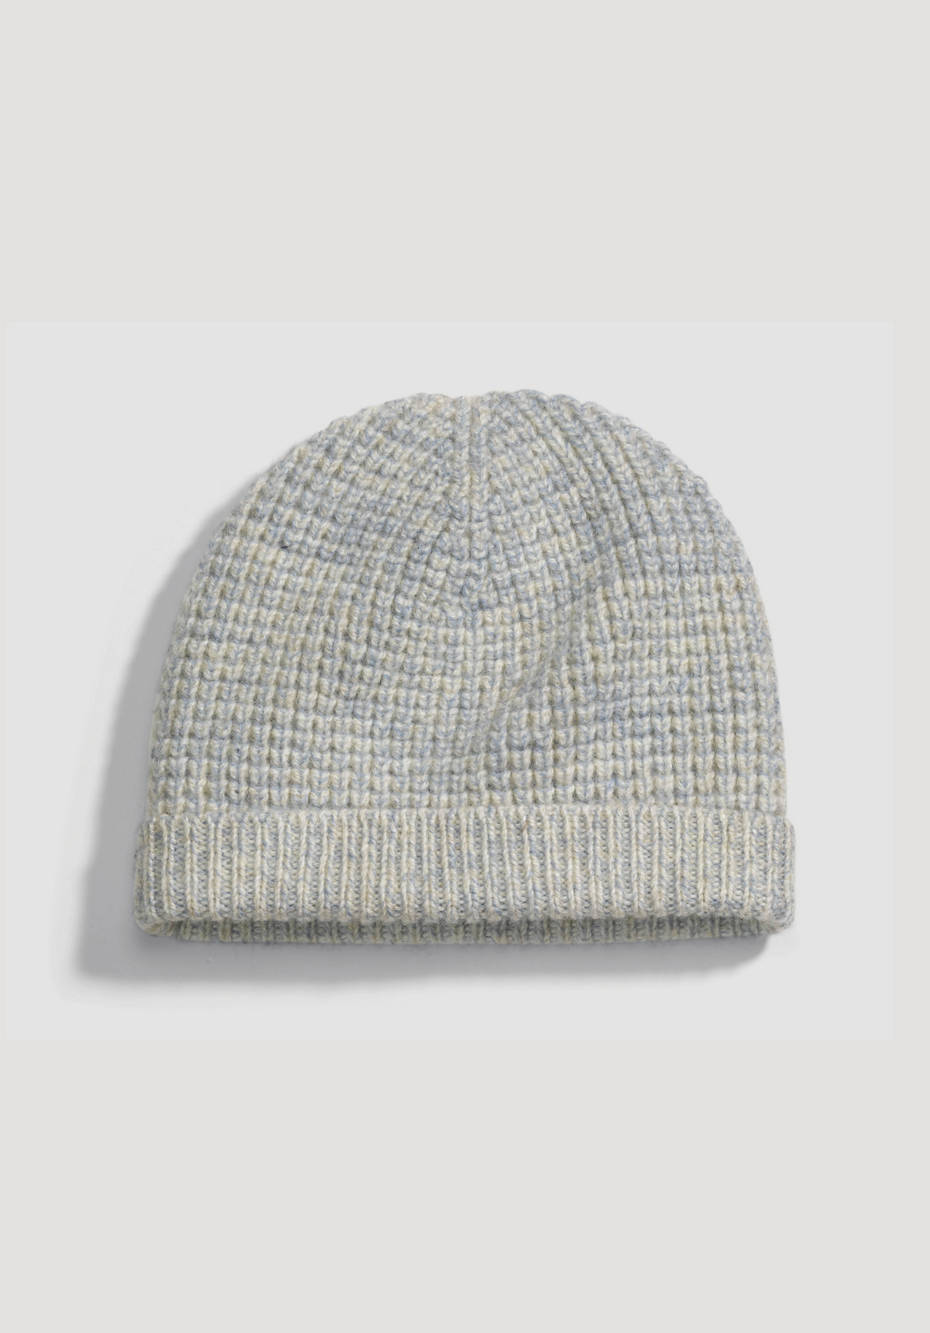 Plant-dyed hat made from pure organic merino wool